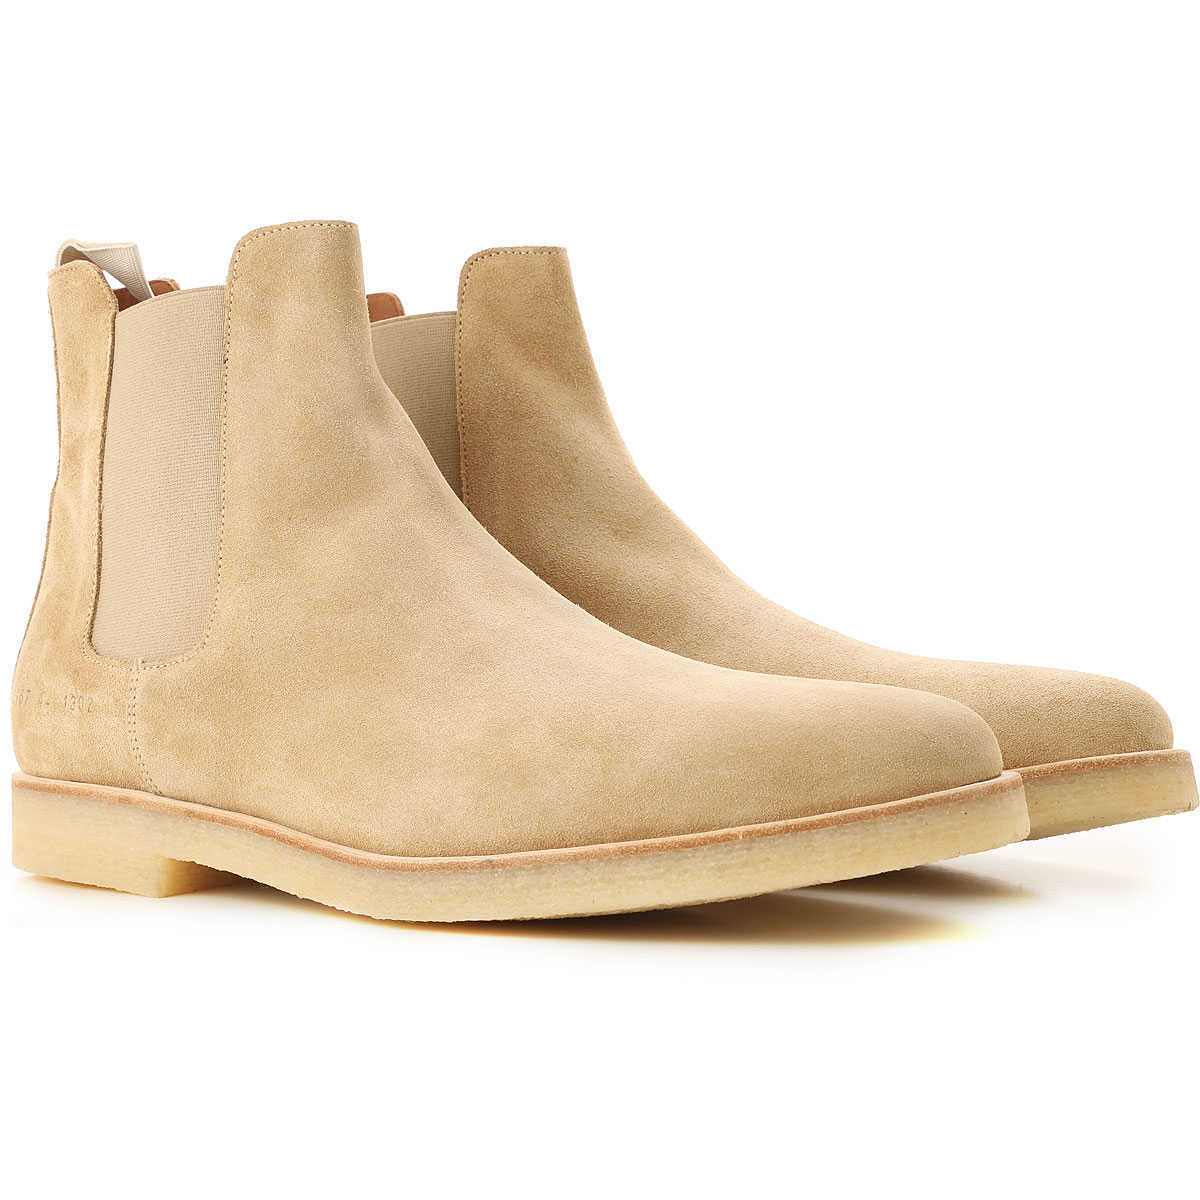 Common Projects Boots for Men Booties On Sale - GOOFASH